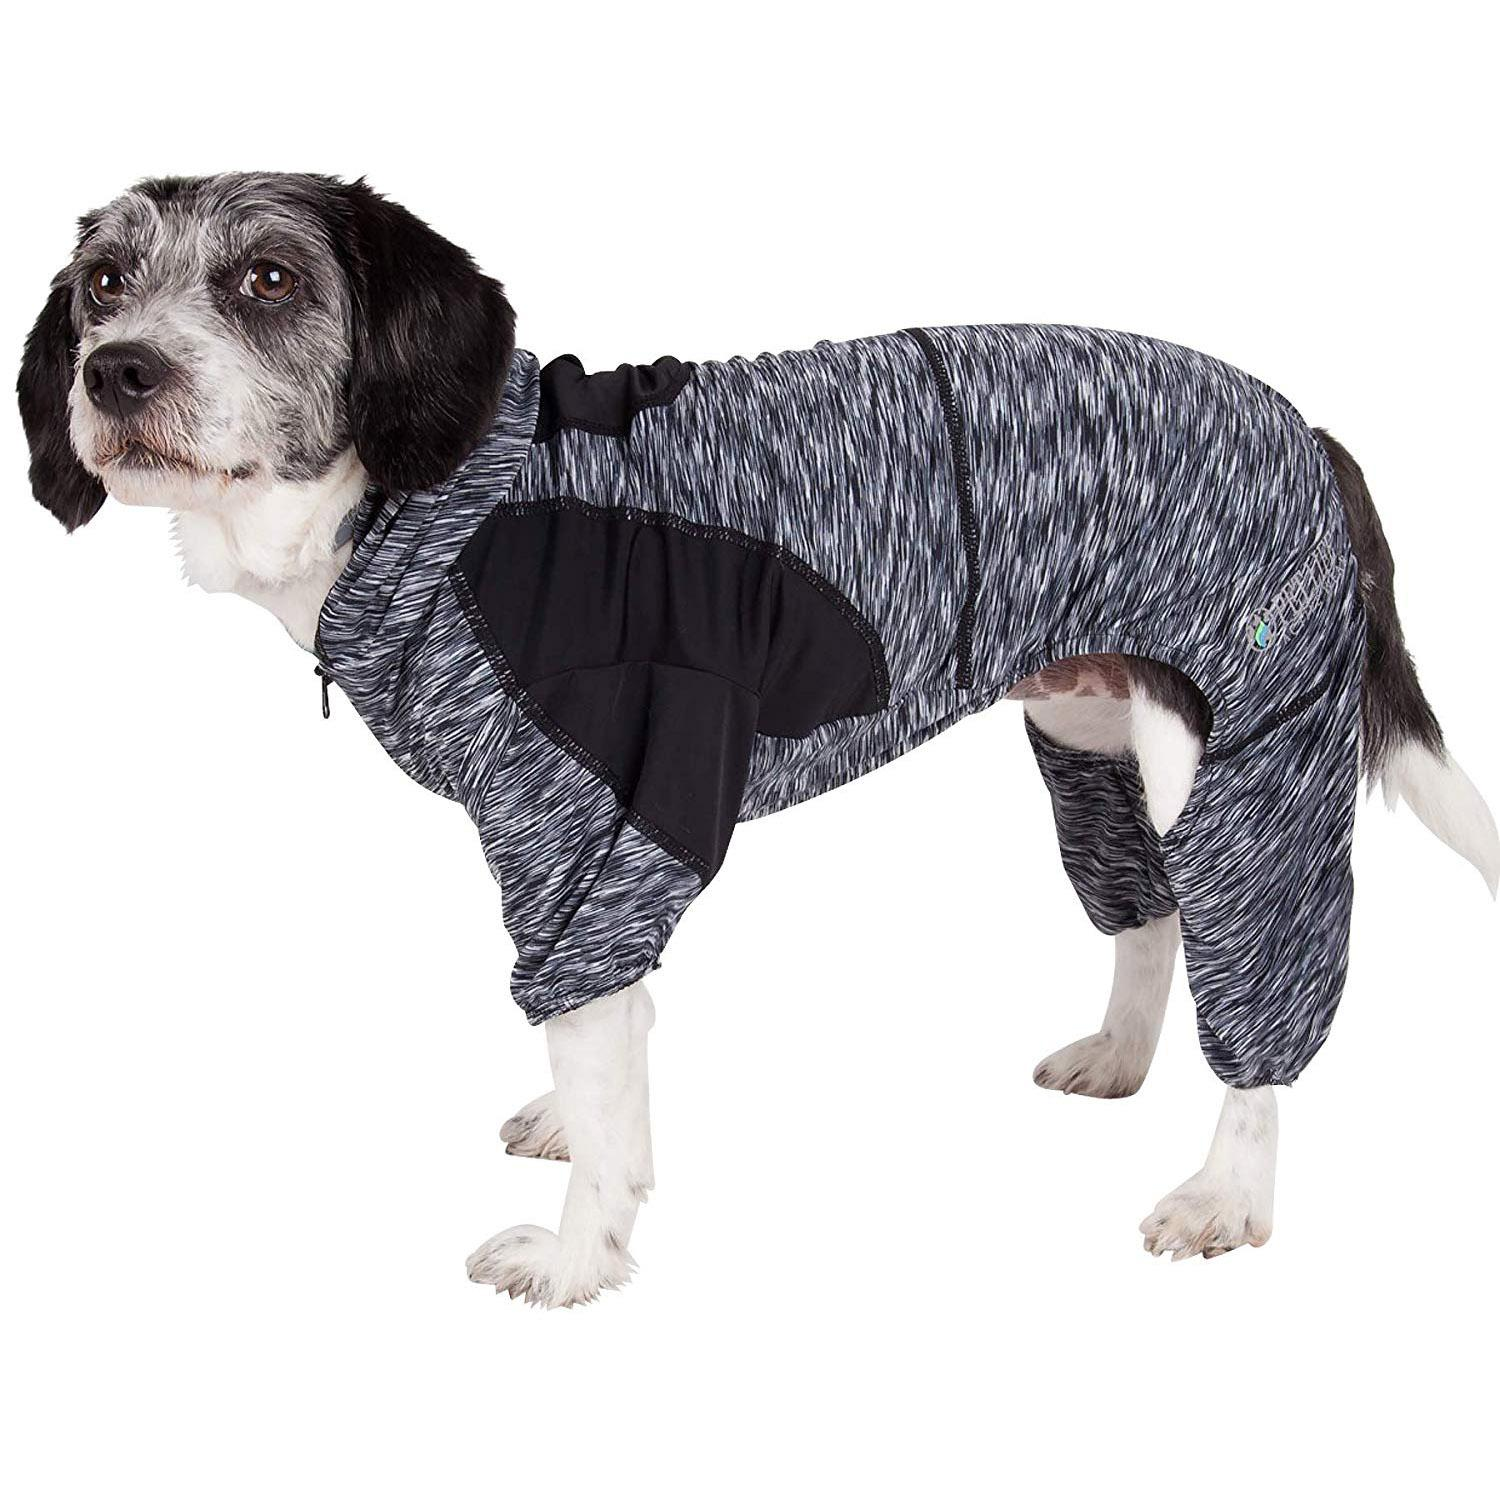 Pet Life ACTIVE 'Downward Dog' Performance Full Body Warm-Up Dog Hoodie - Black